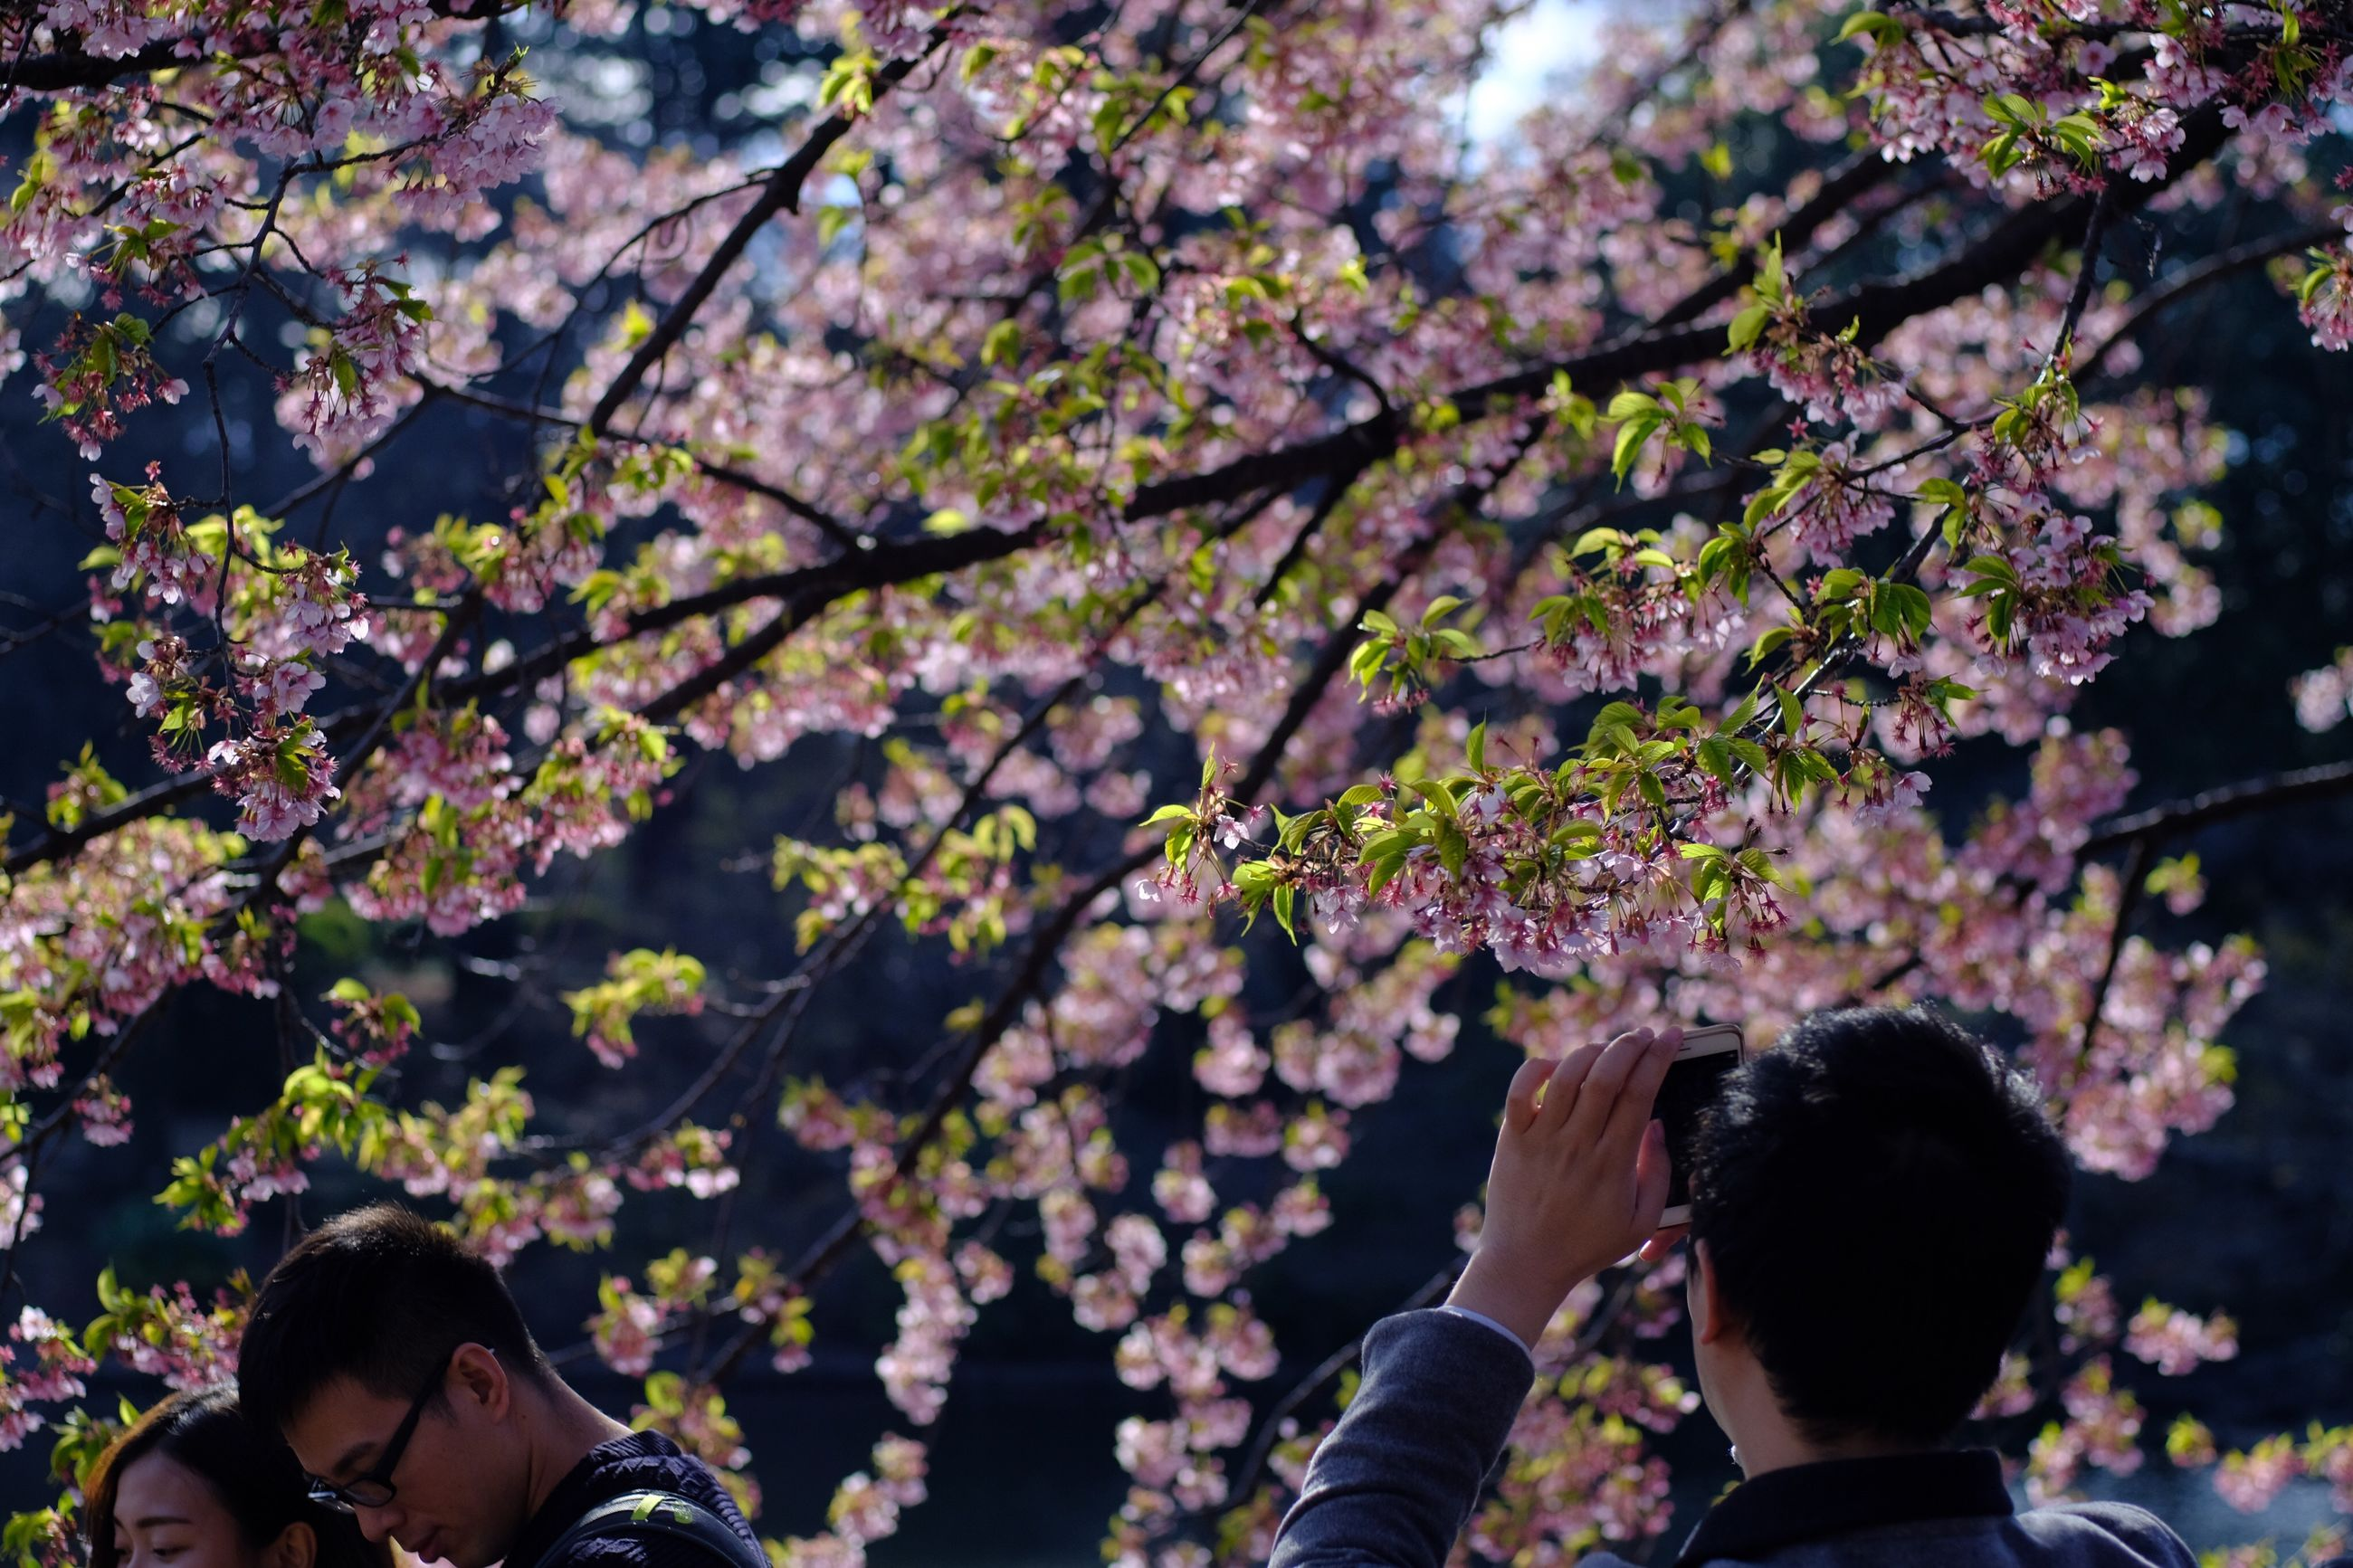 LOW ANGLE VIEW OF WOMAN AND FLOWERS ON TREE